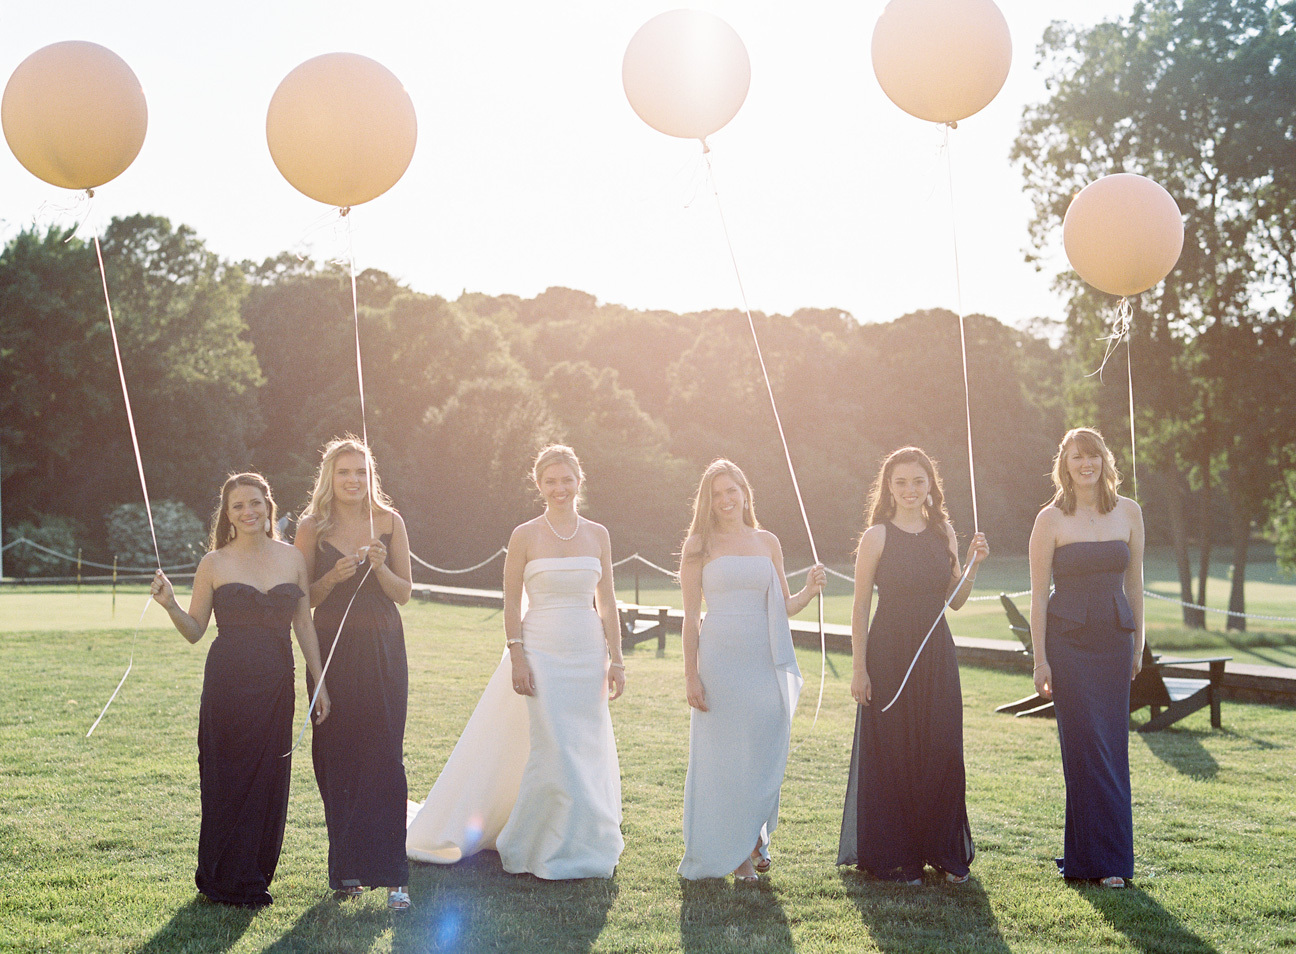 Photojournalistic style of bride and bridesmaids with balloons